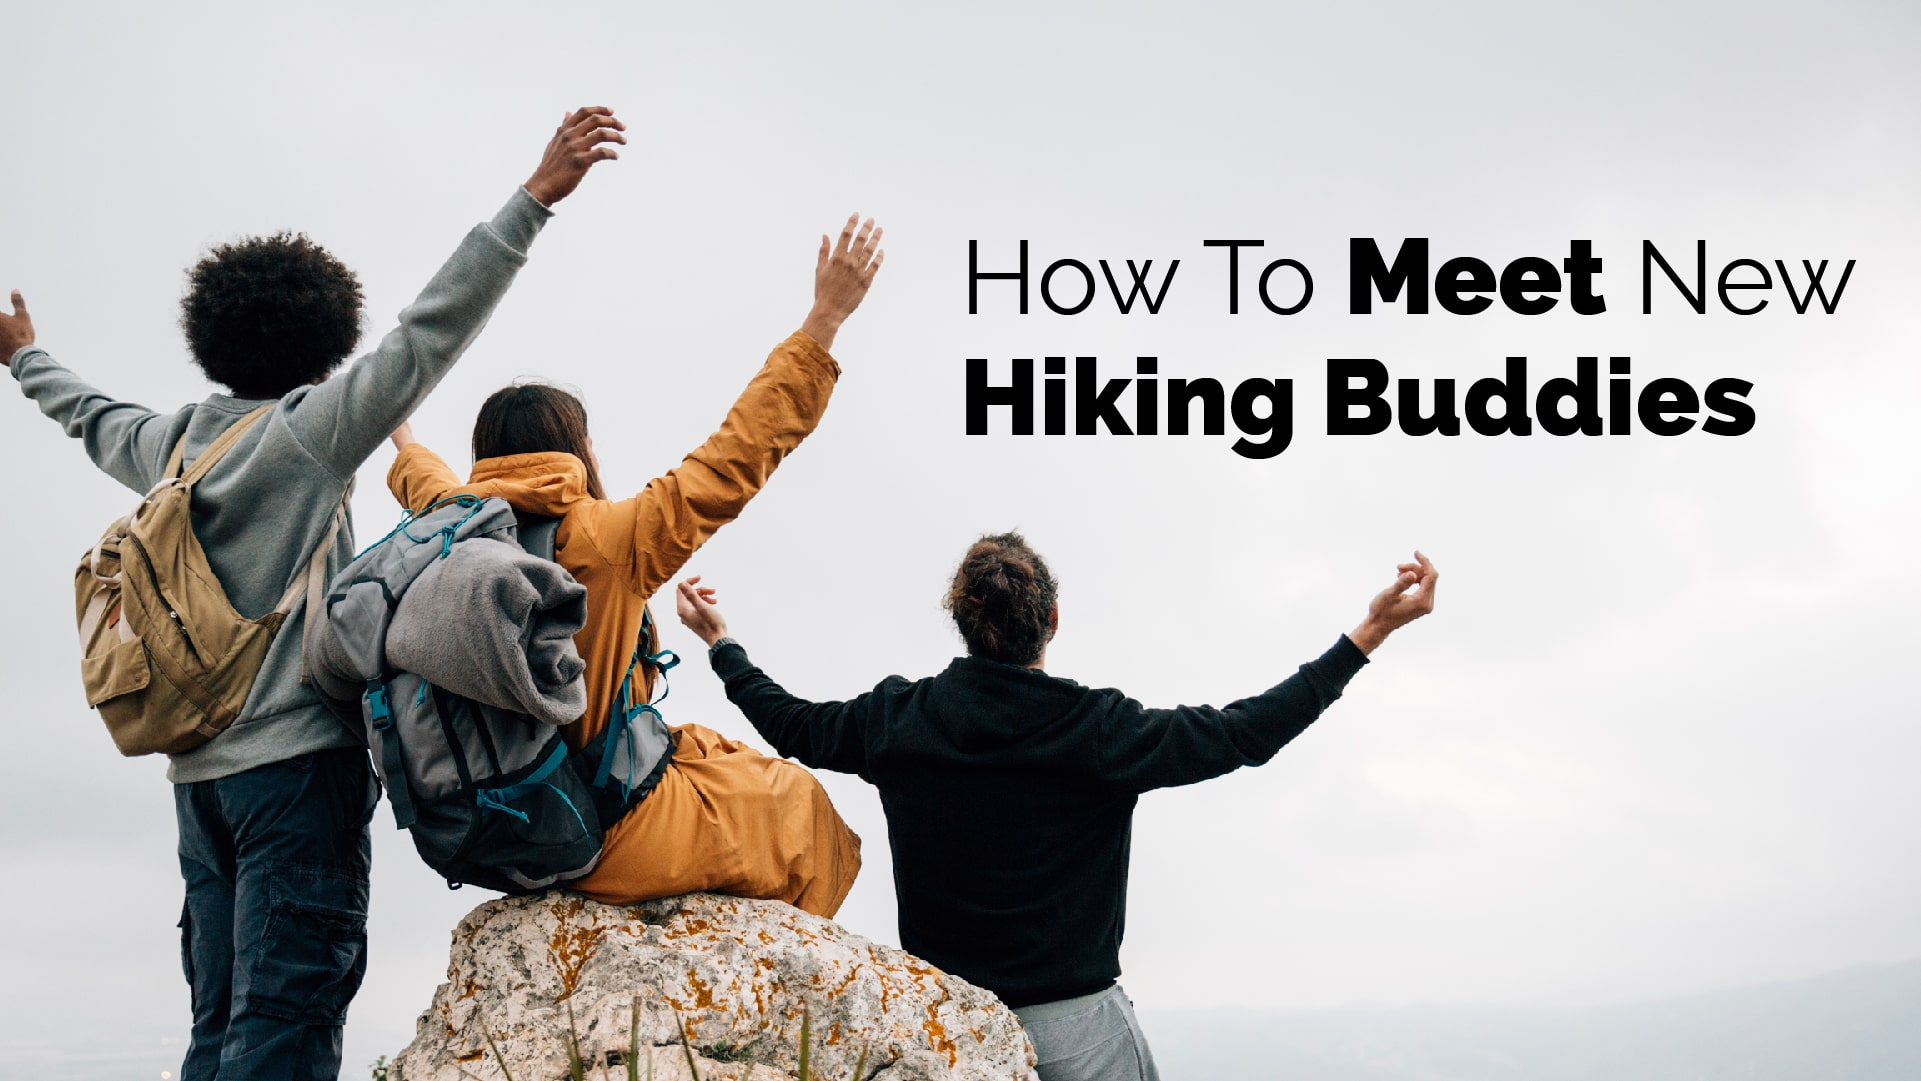 How To Meet New Hiking Buddies